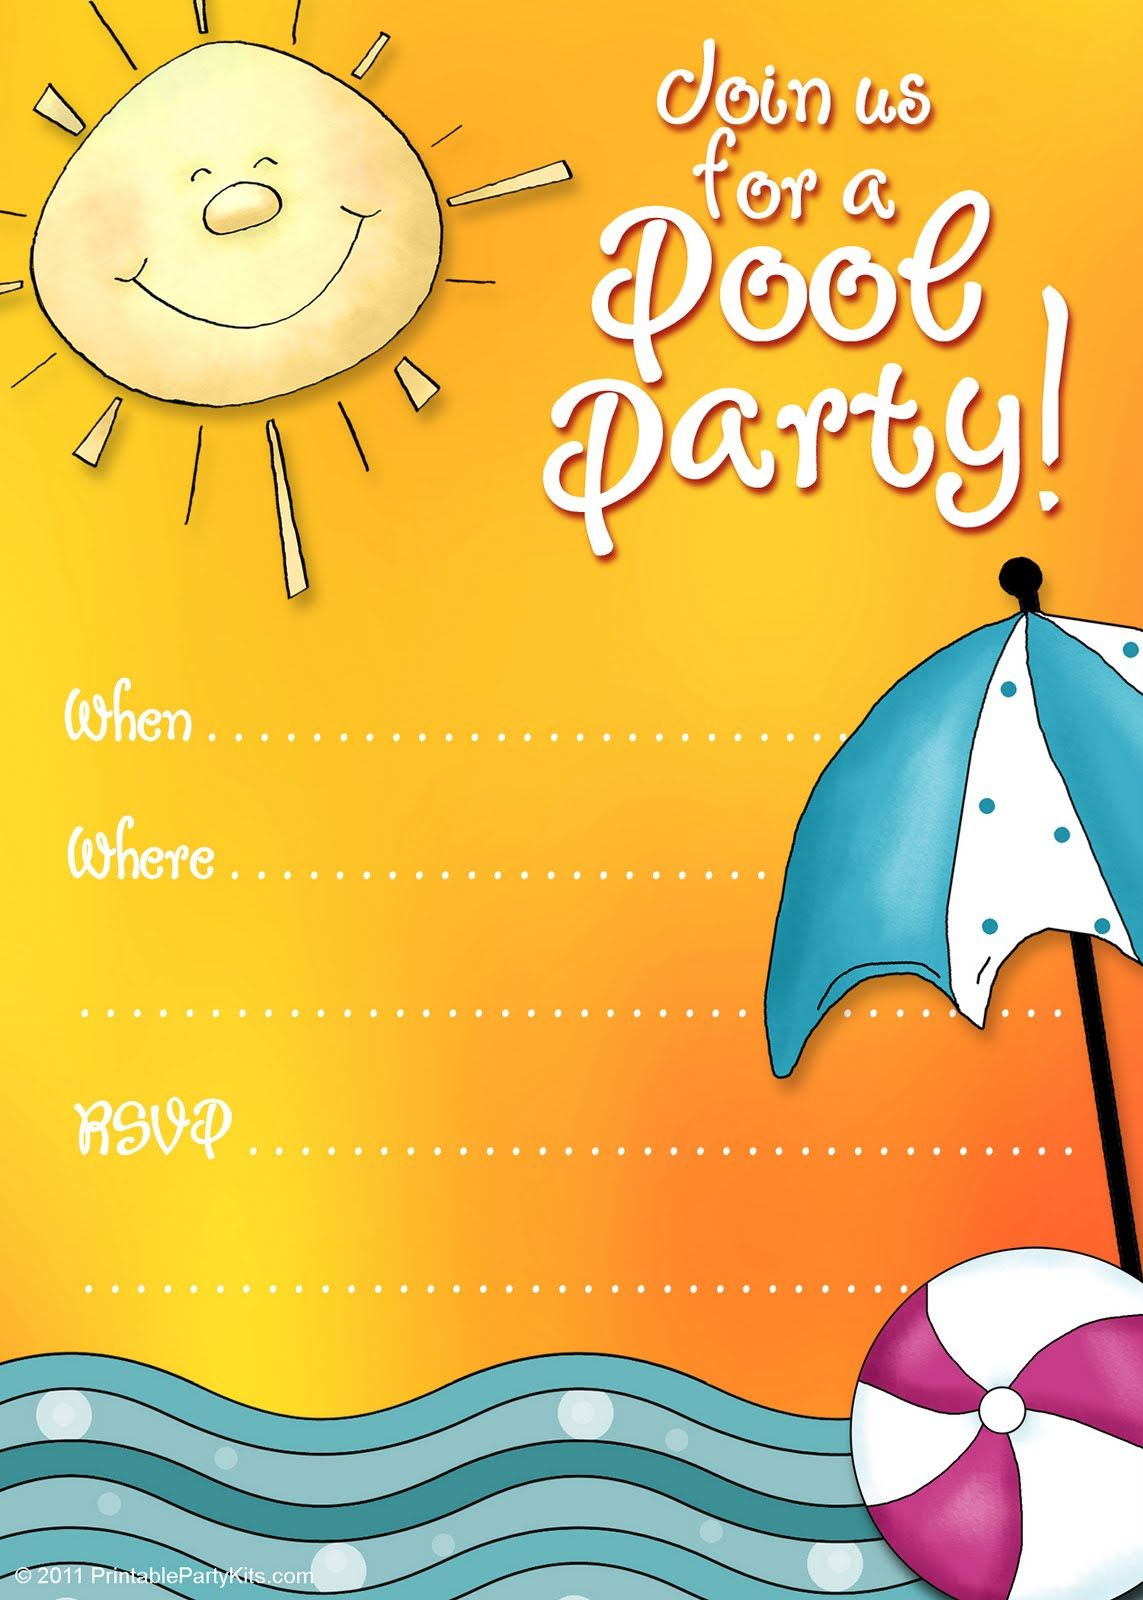 Free Printable Party Invitations: Summer Pool Party Invites - Free Printable Pool Party Invitation Cards